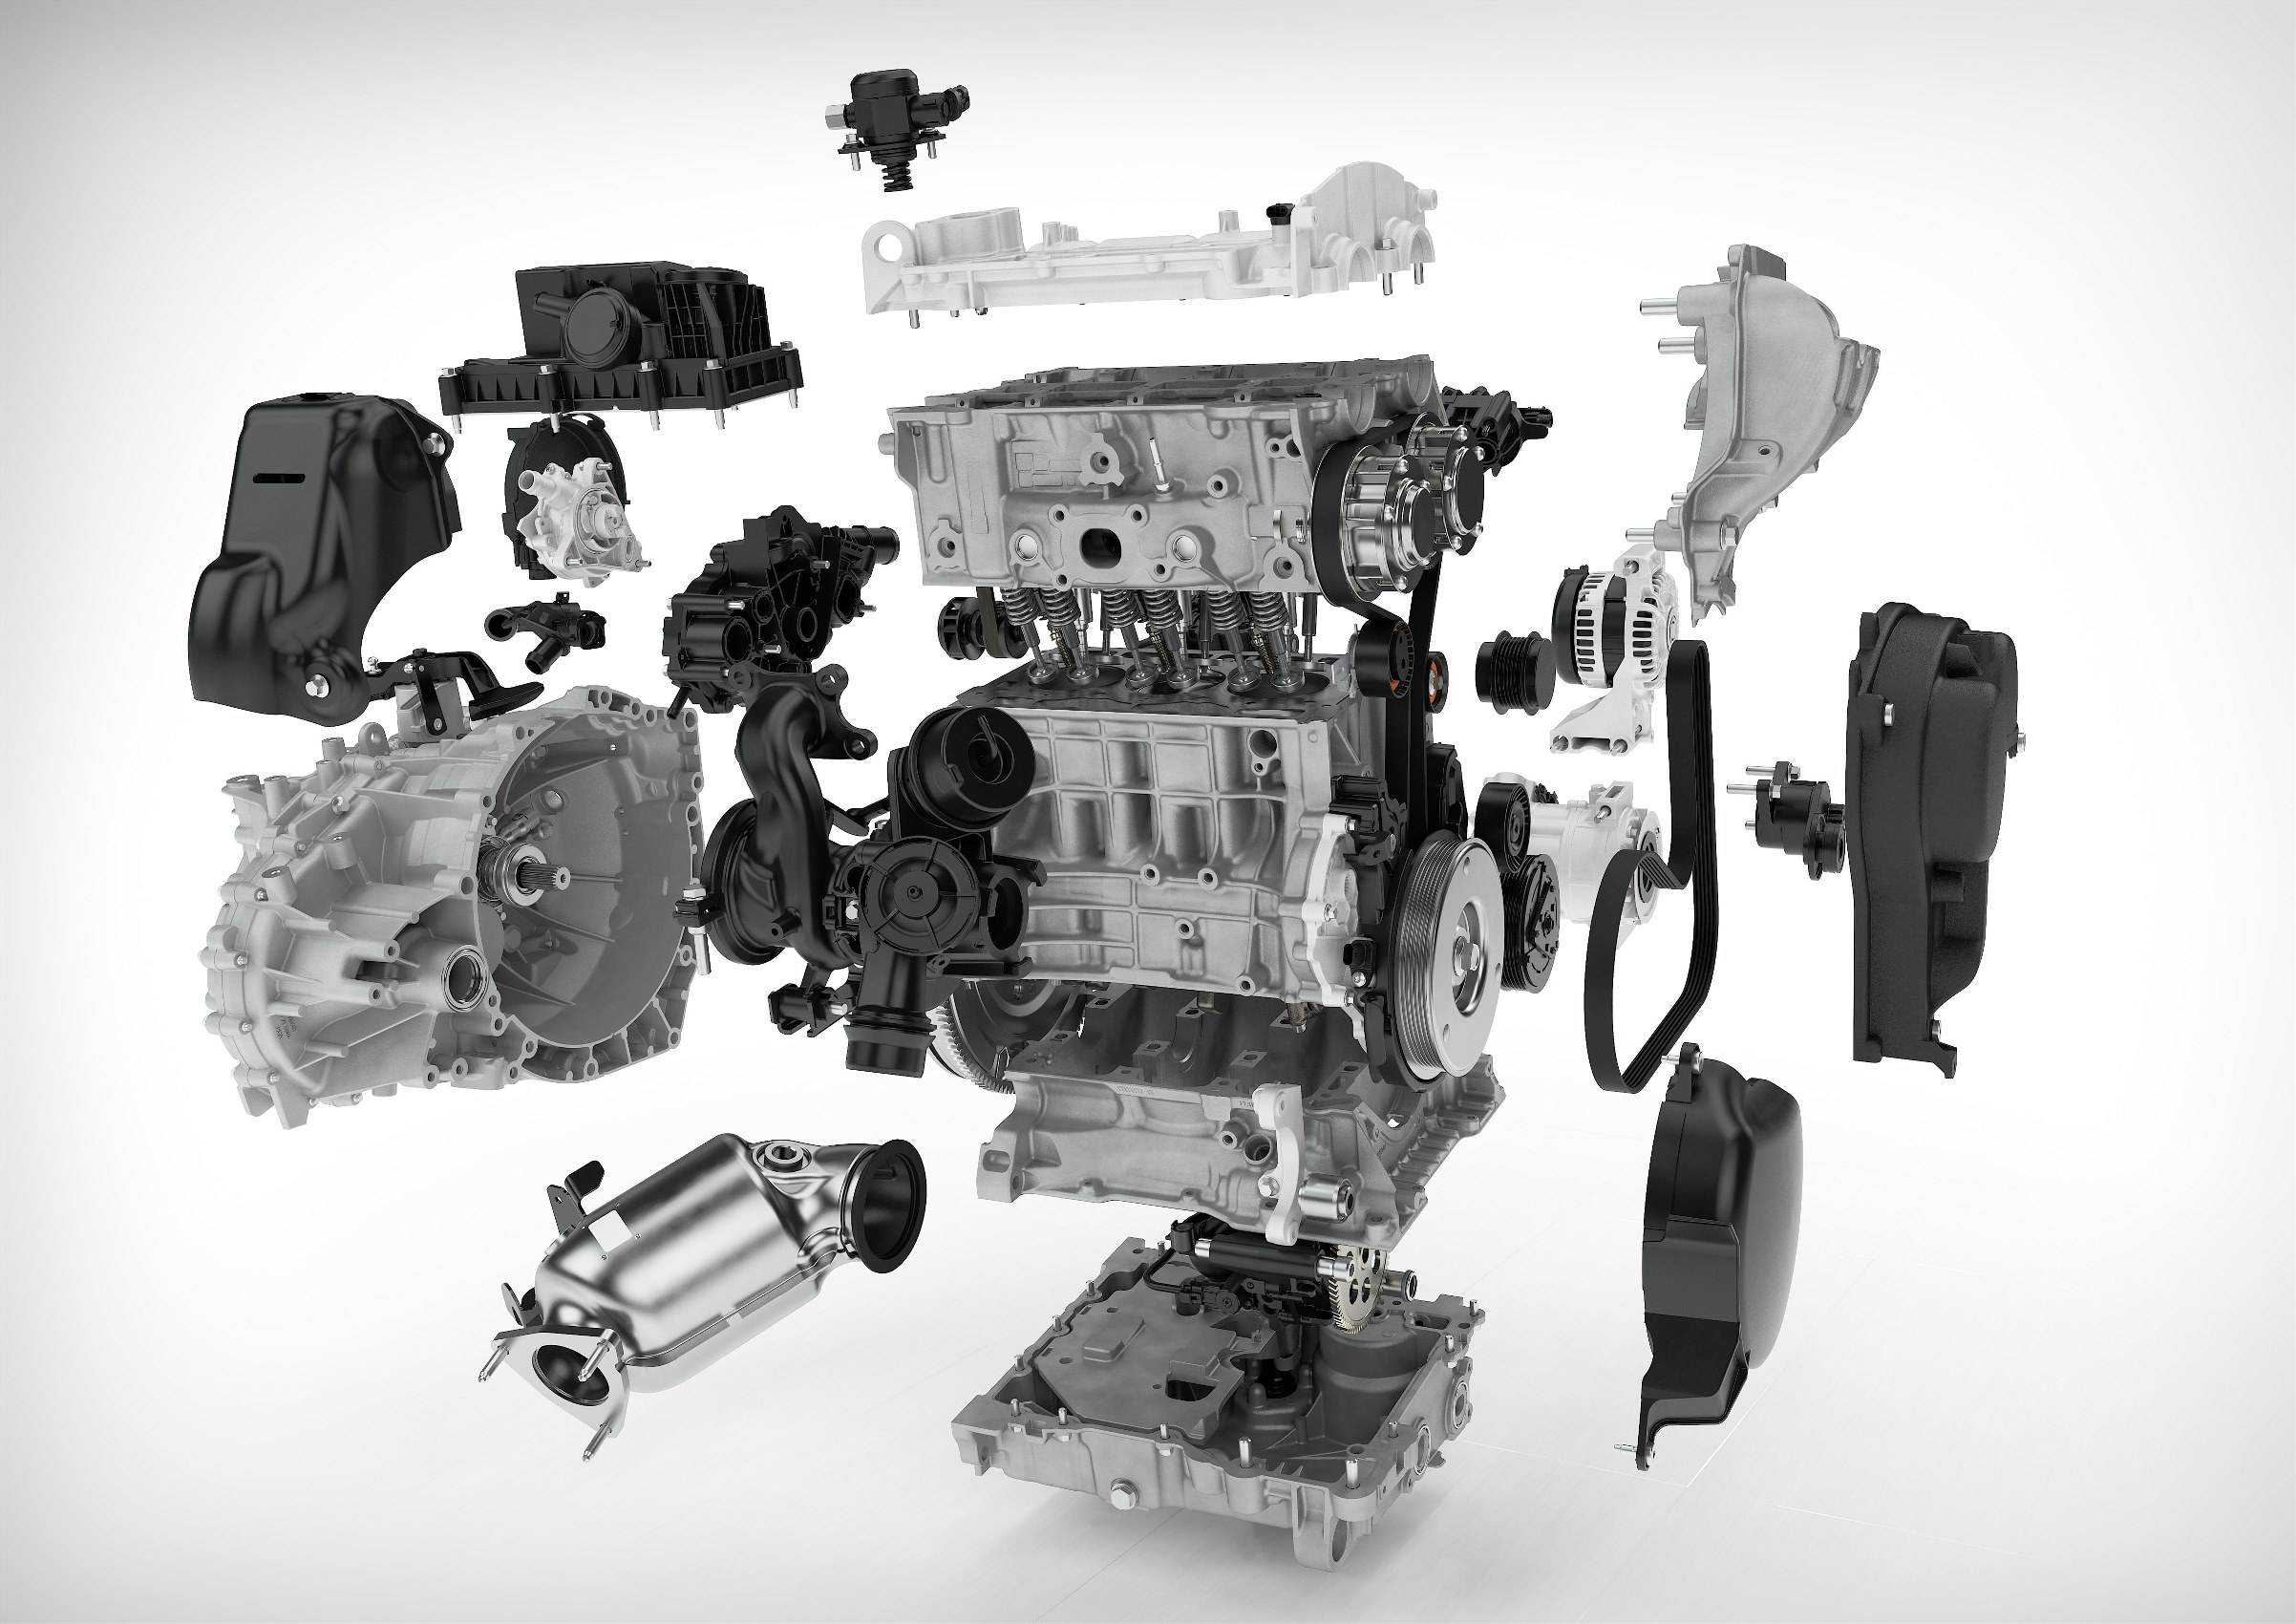 Exploded view of Volvo 3-cylinder 1.5 litre Drive-E engine for the XC40